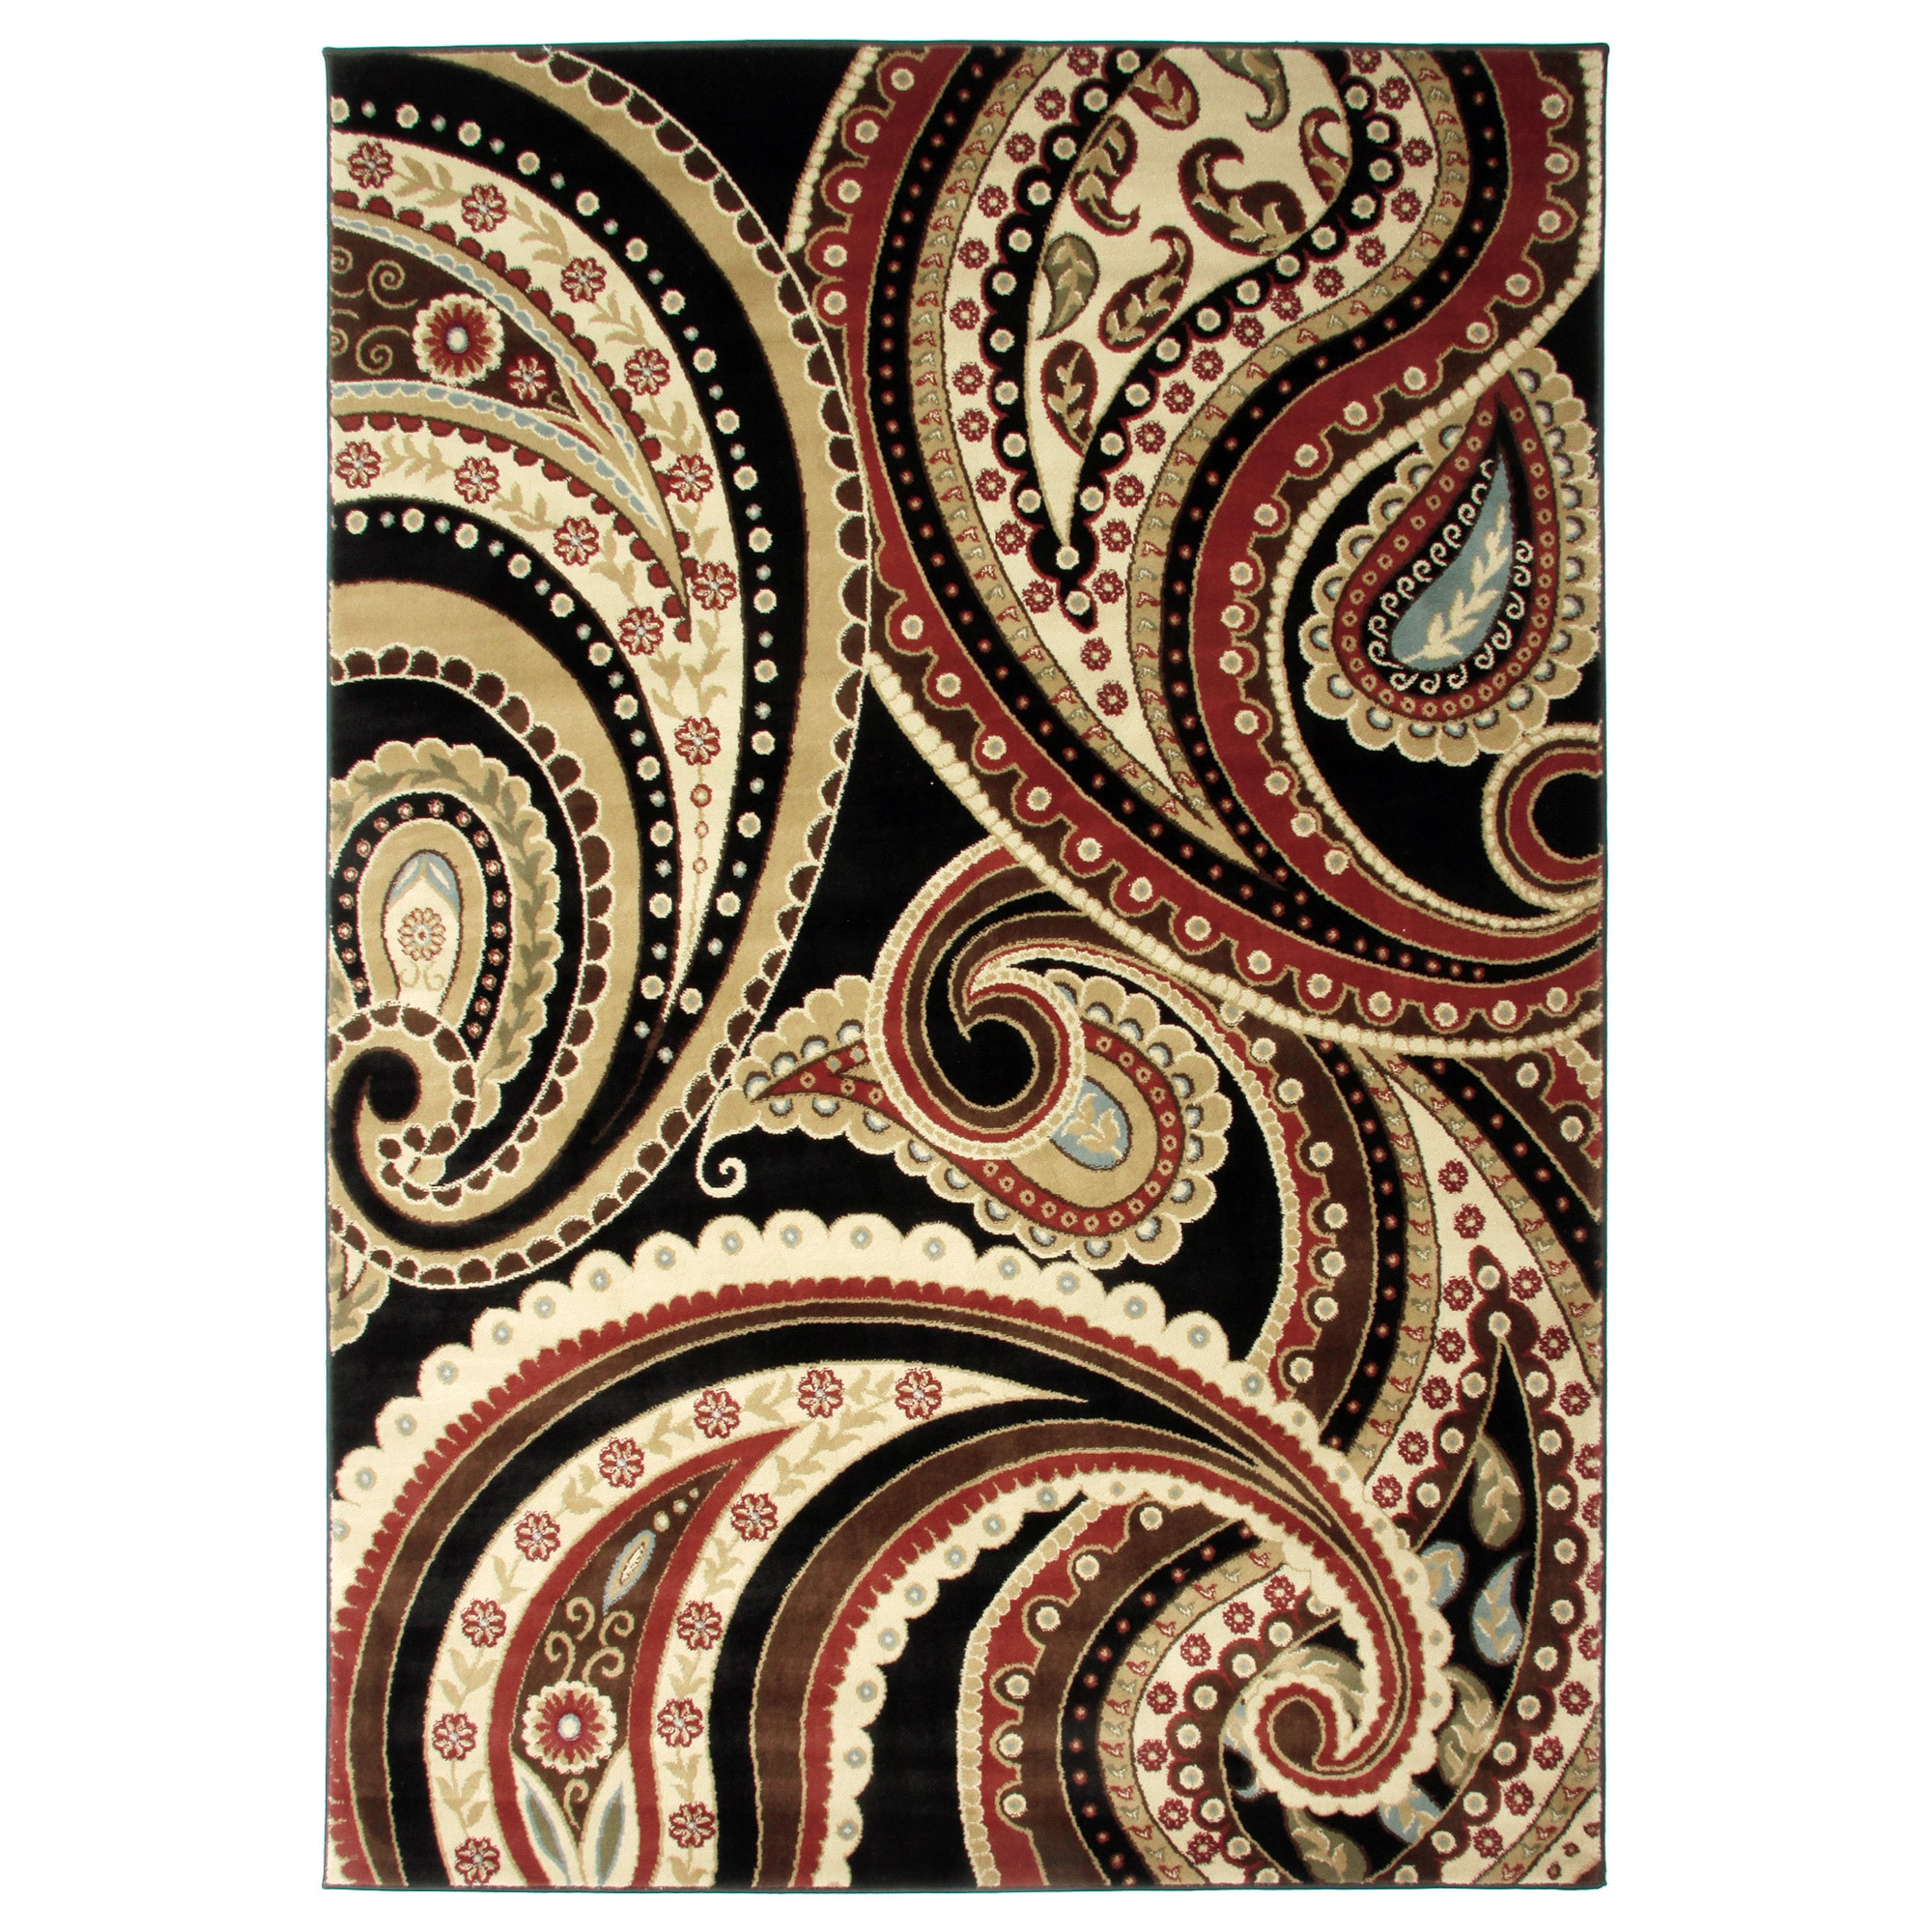 Maryberry Rugs Contemporay Paisley Multicolor Area Rug (5'3 x 7'7)